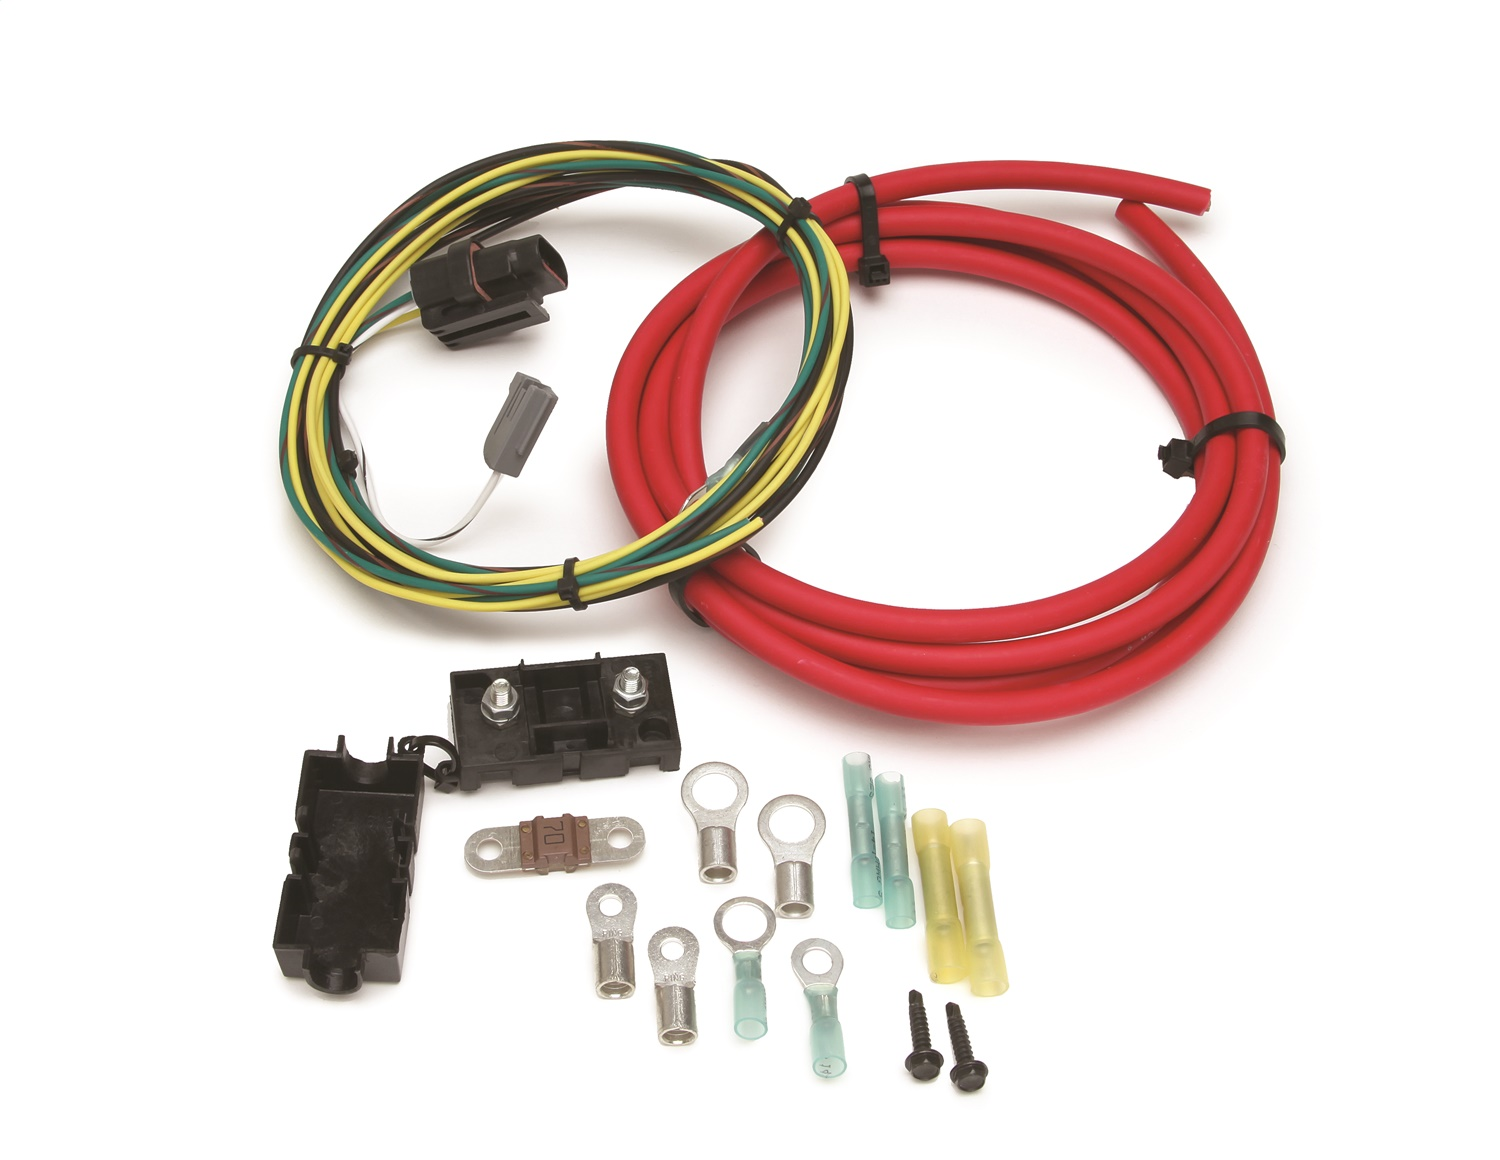 painless wiring 30831 ford 3g alternator harness ebay